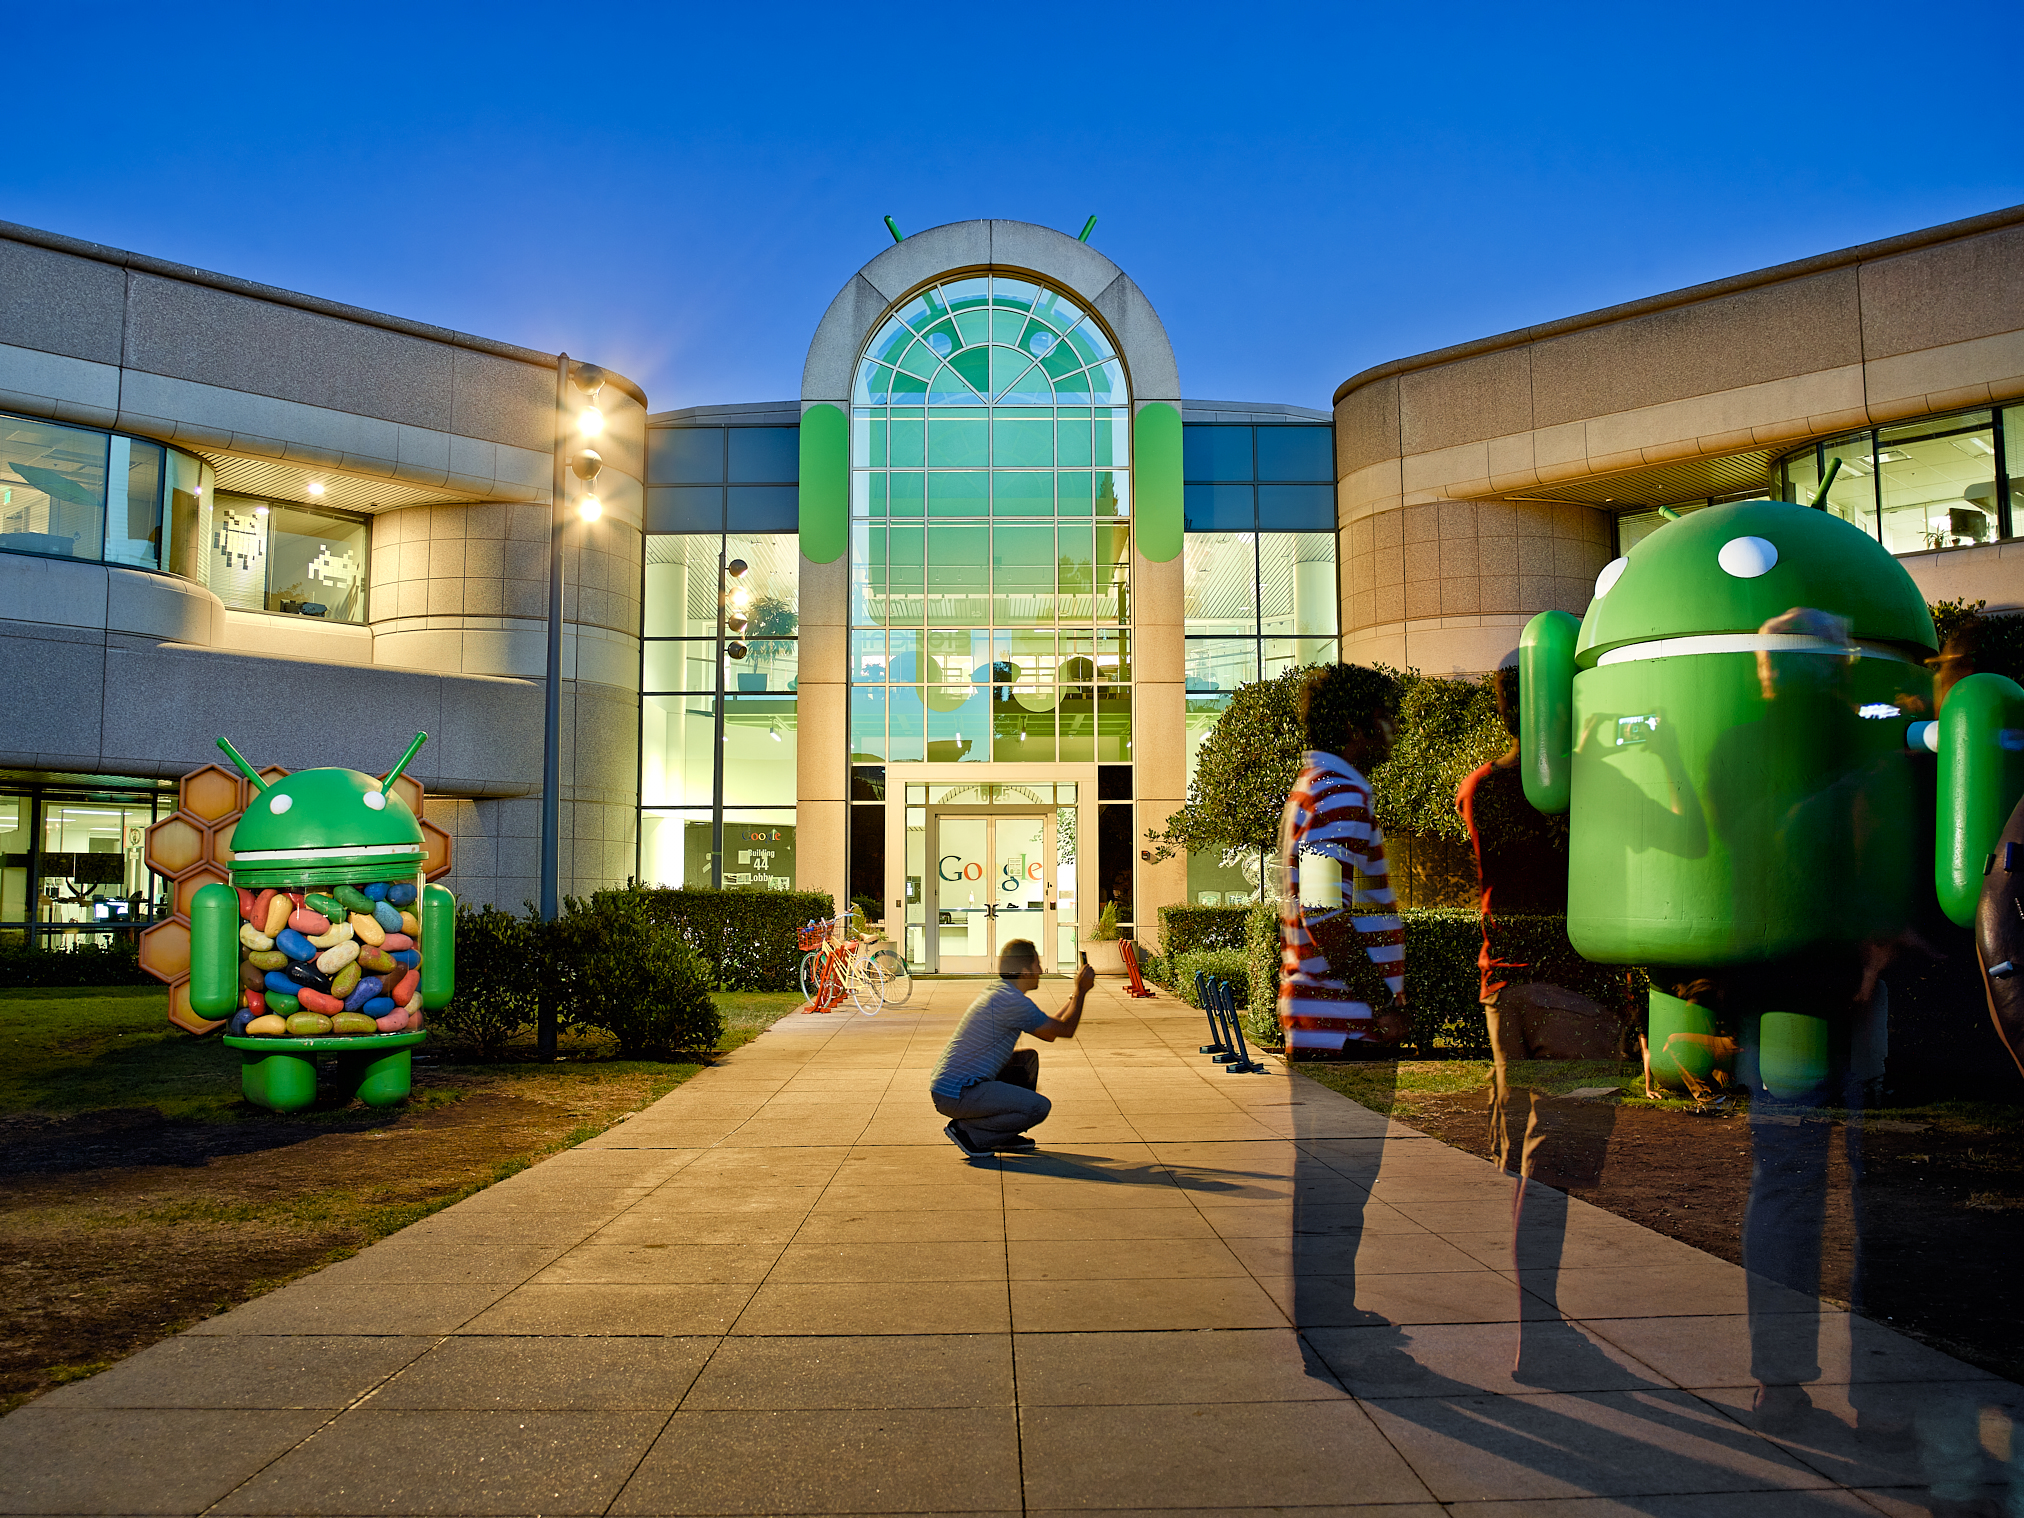 Android Sculptures by Peter Adams.